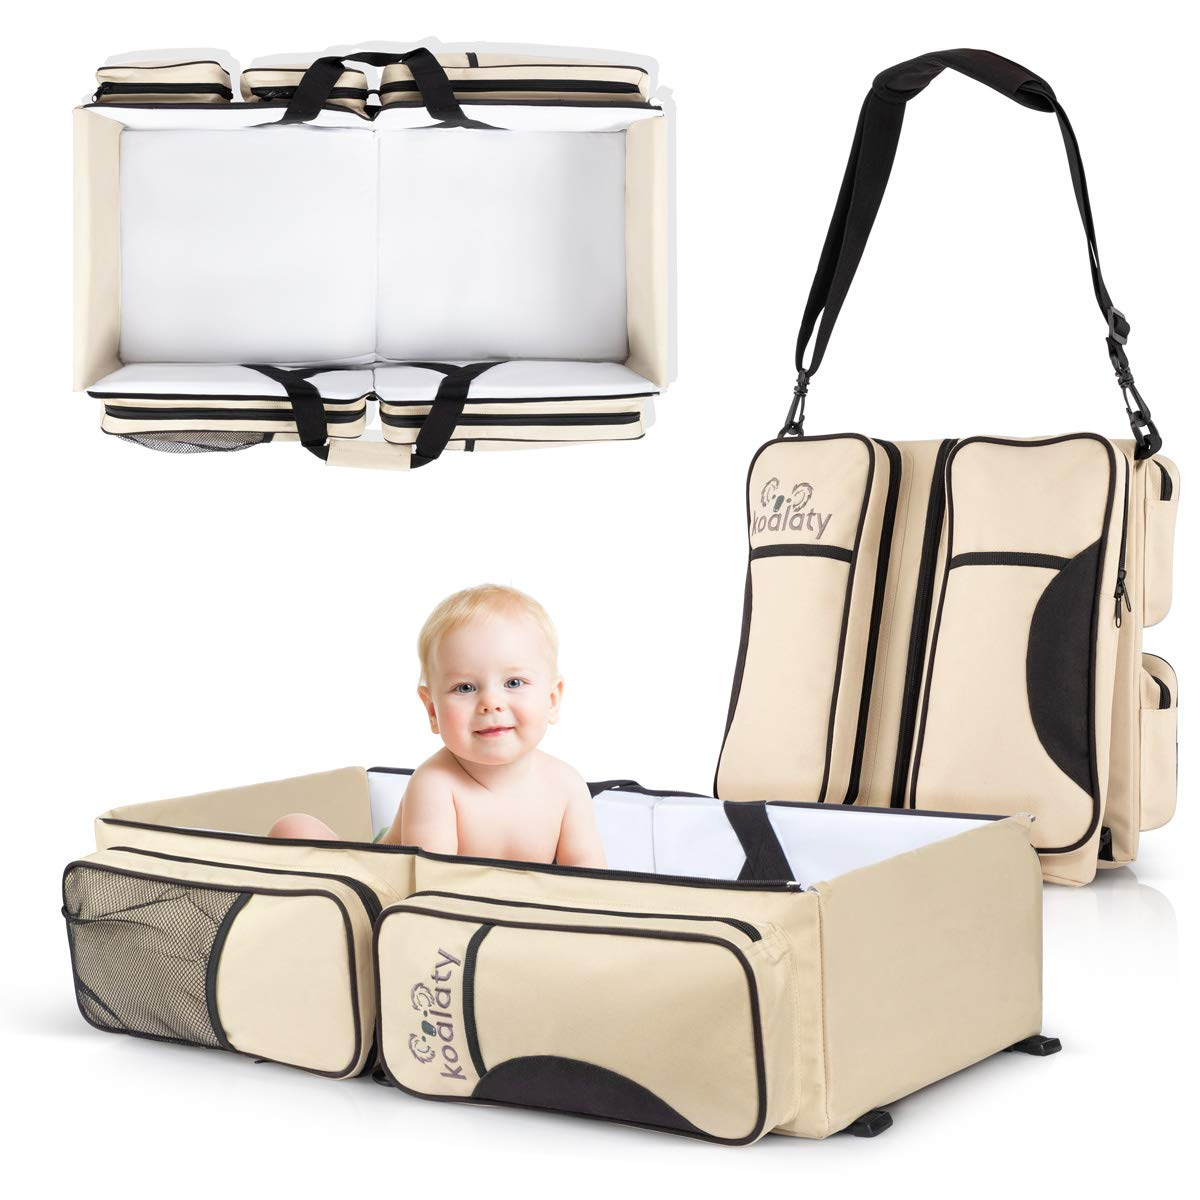 Koalaty 3-in-1 Universal Baby Travel Bag: Portable Bassinet Crib, Changing Station, and Diaper Bag for Newborns or Infants. The Best for New mom and dad. by Koalaty